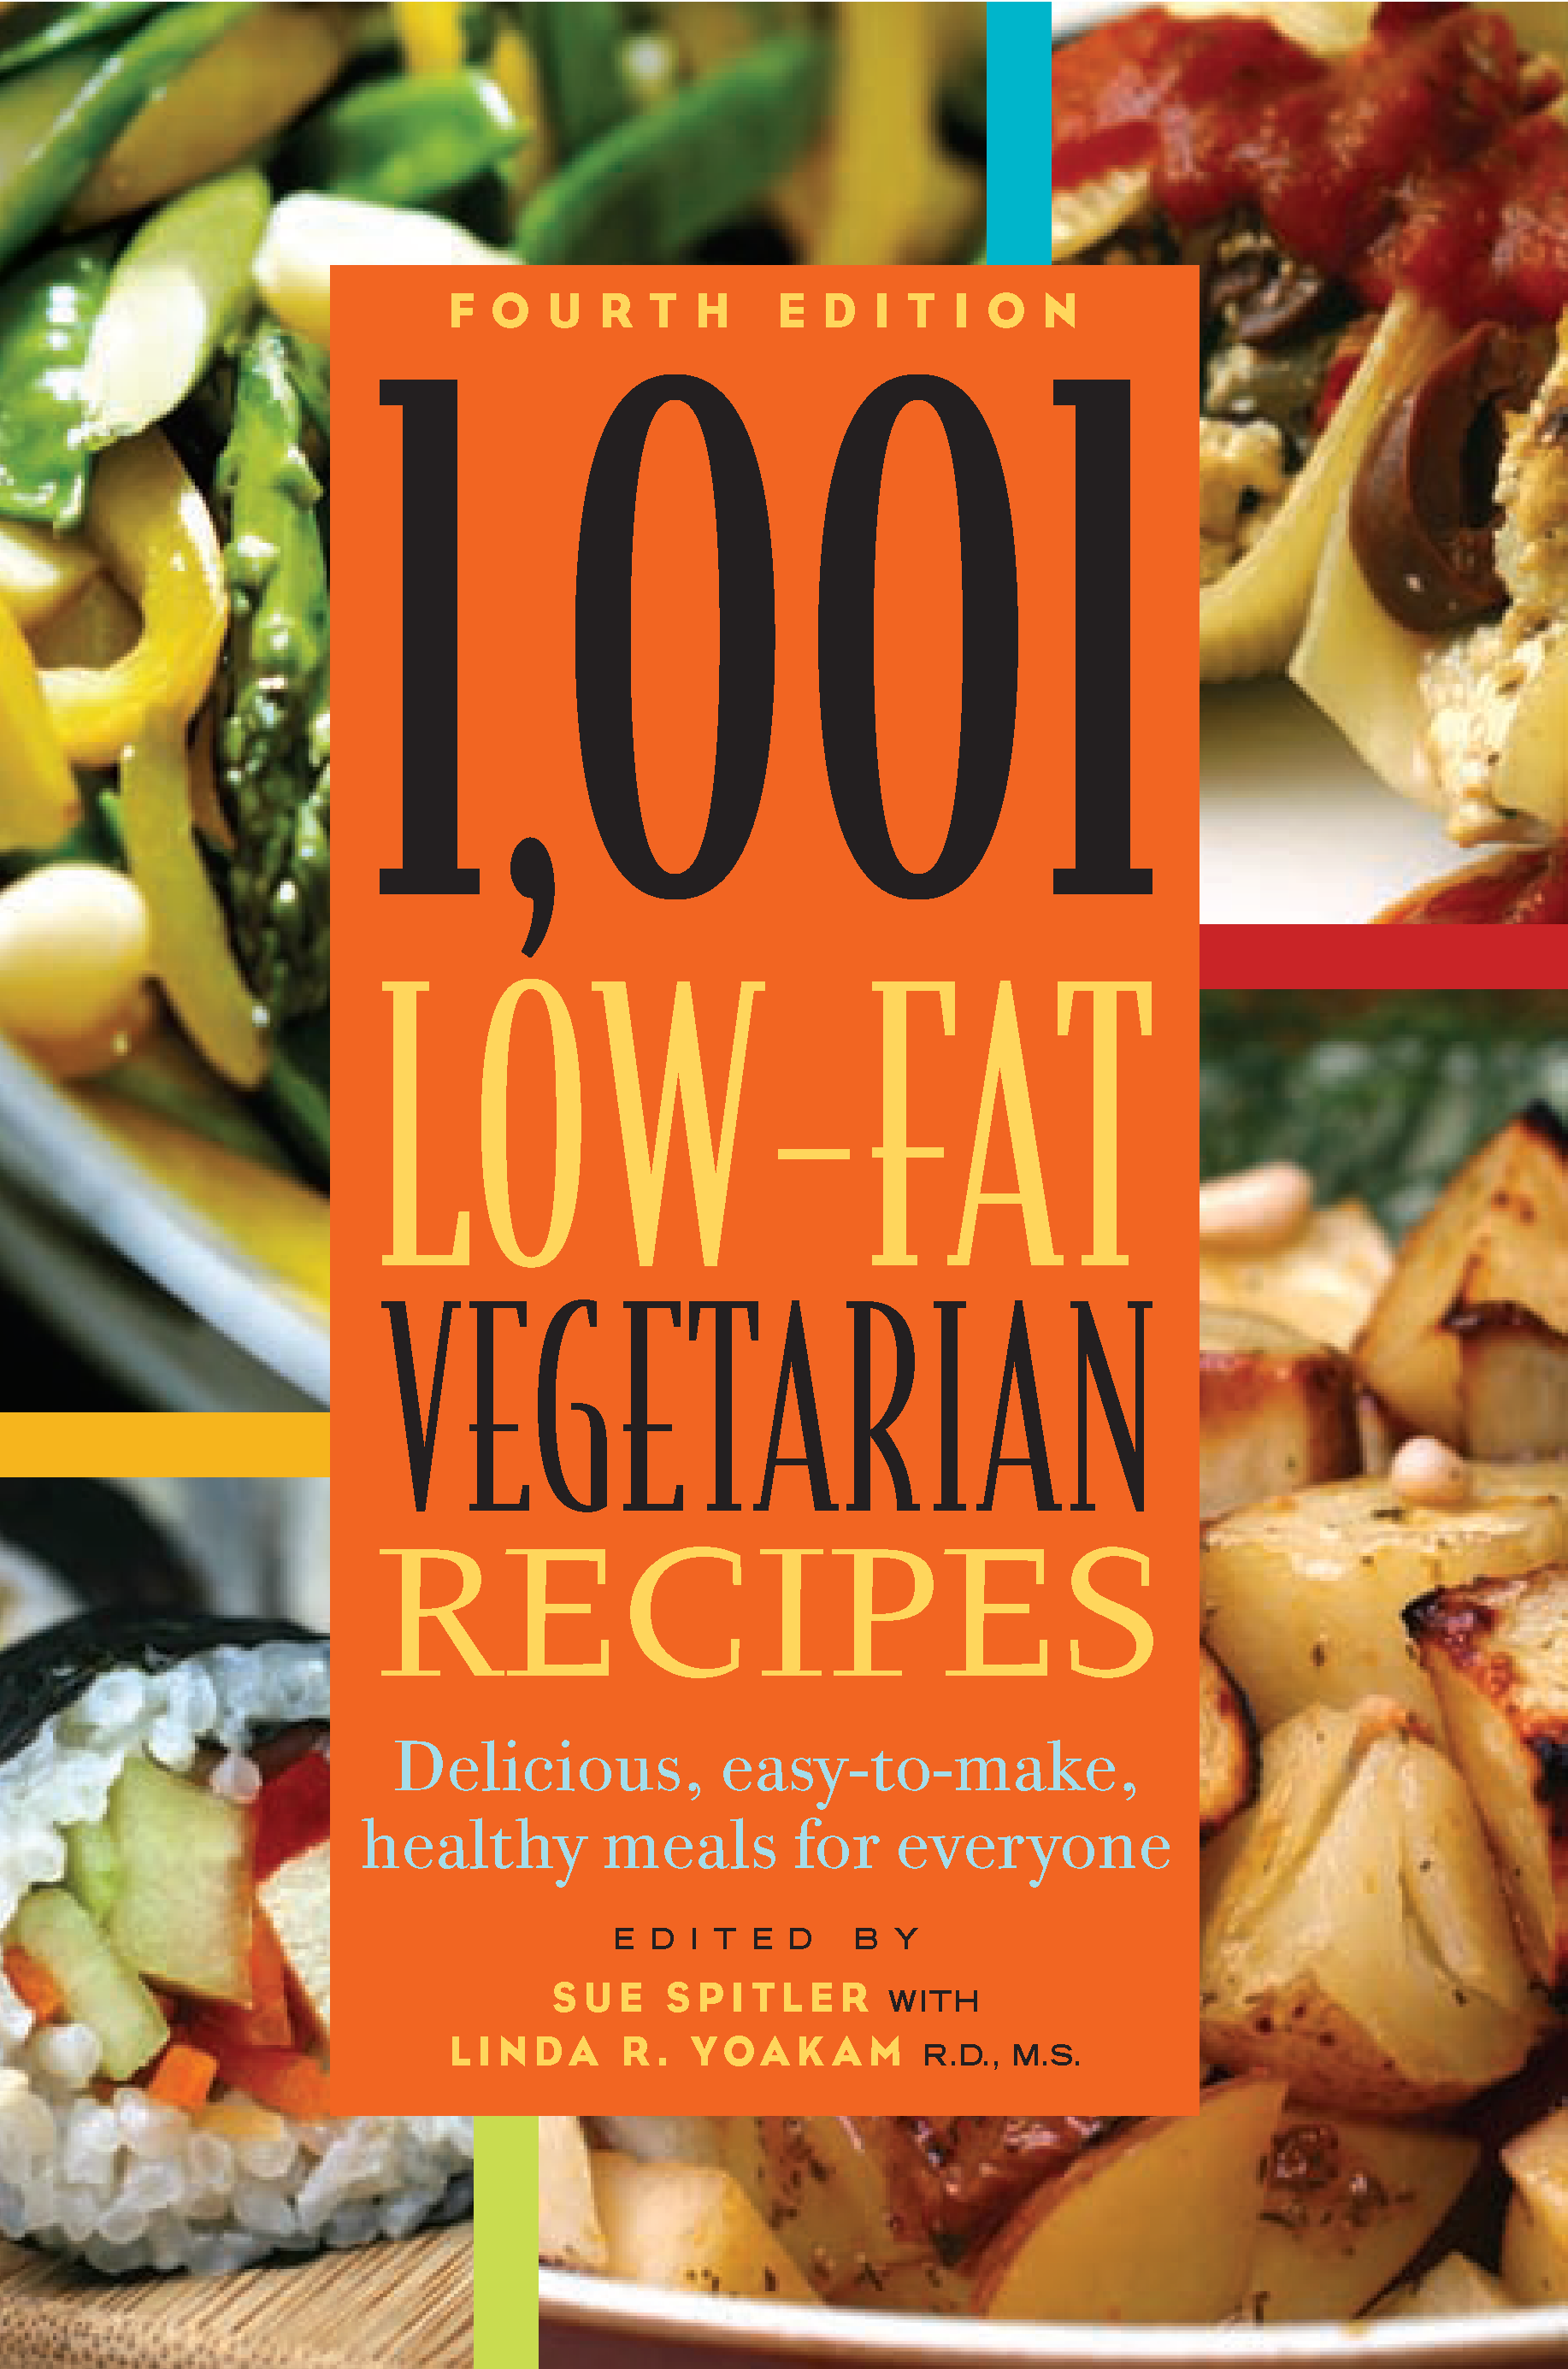 1,001 Low-Fat Vegetarian_Page_01.png